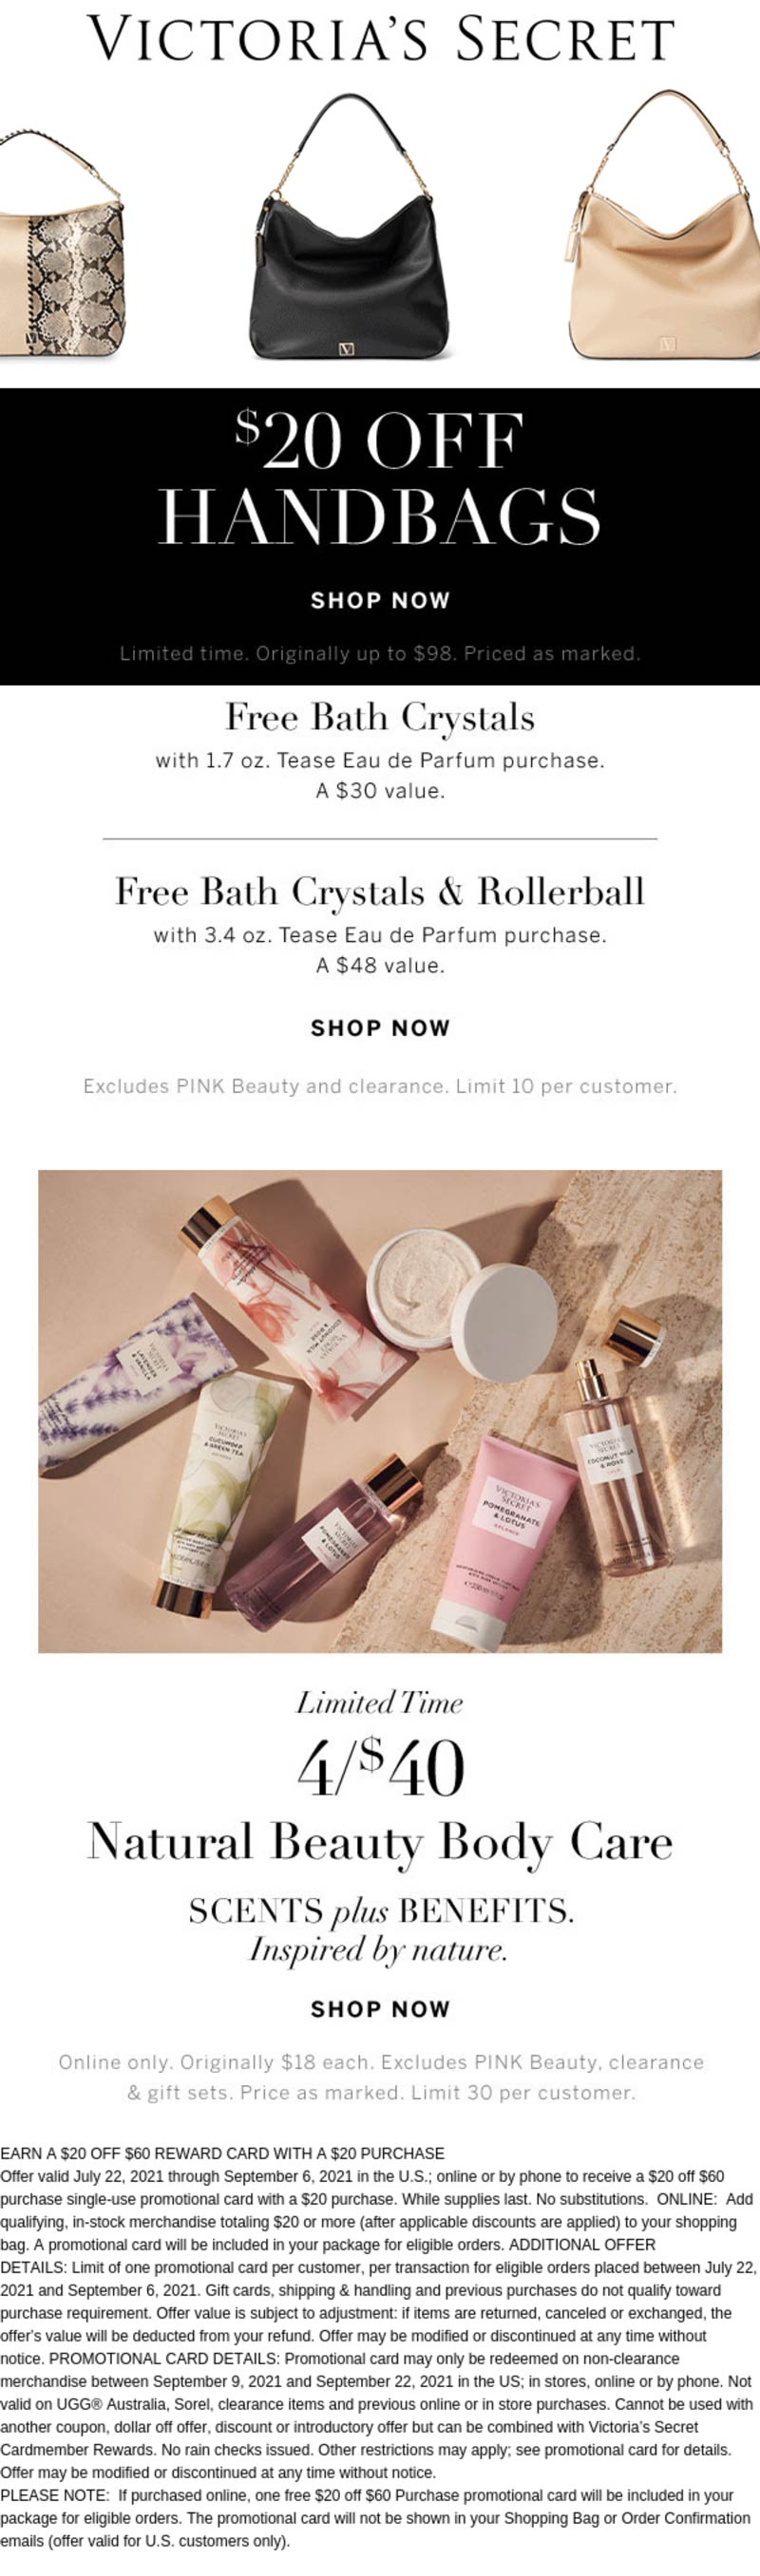 Victorias Secret stores Coupon  $20 off handbags & free bath crystals with your fragrance at Victorias Secret #victoriassecret